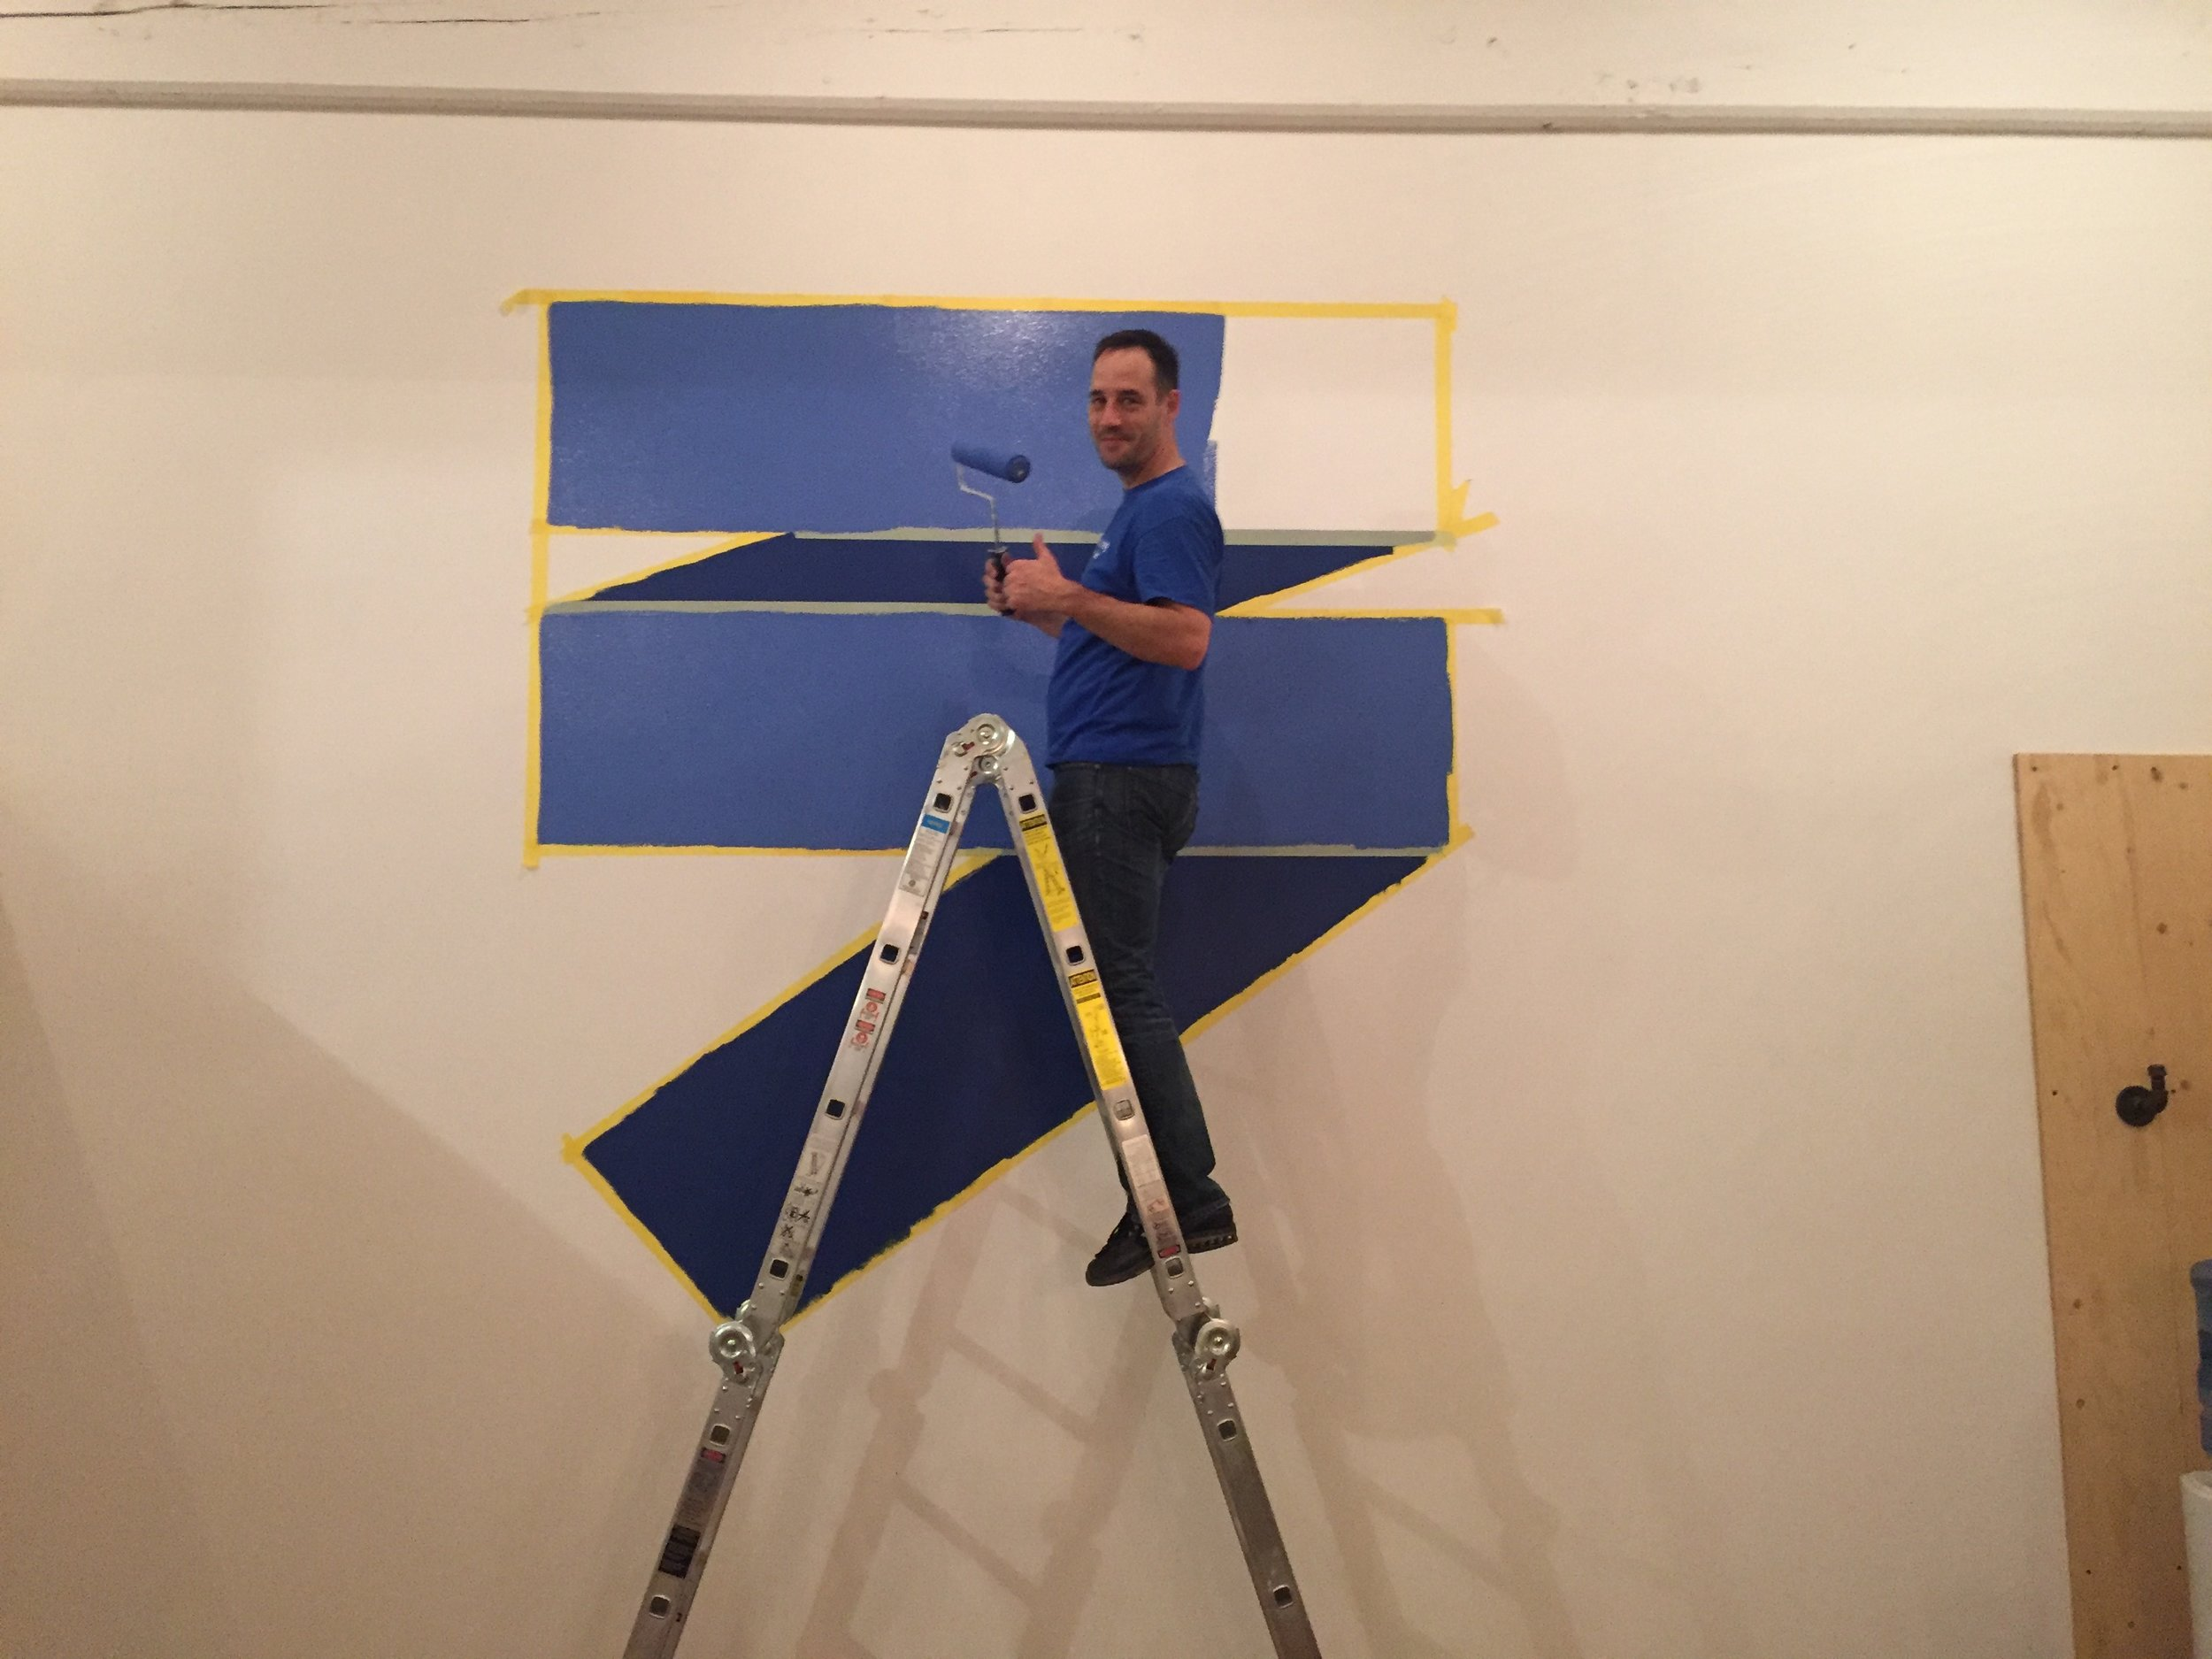 An important milestone in our story: the day we painted our logo on the wall